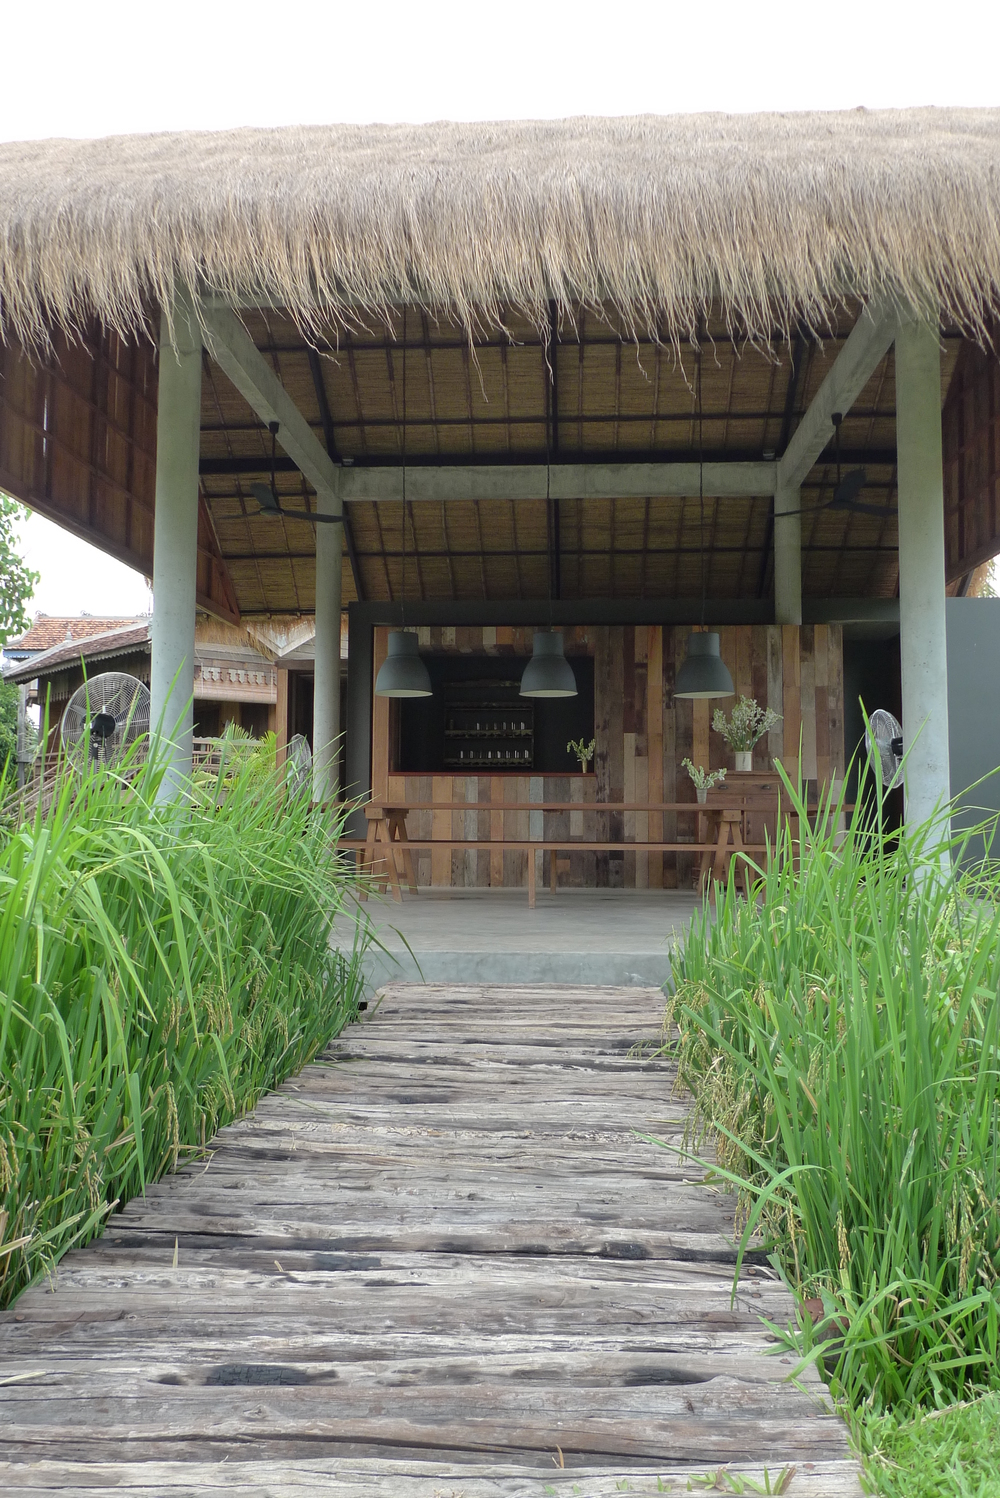 Bridge across the rice paddy to the lounge